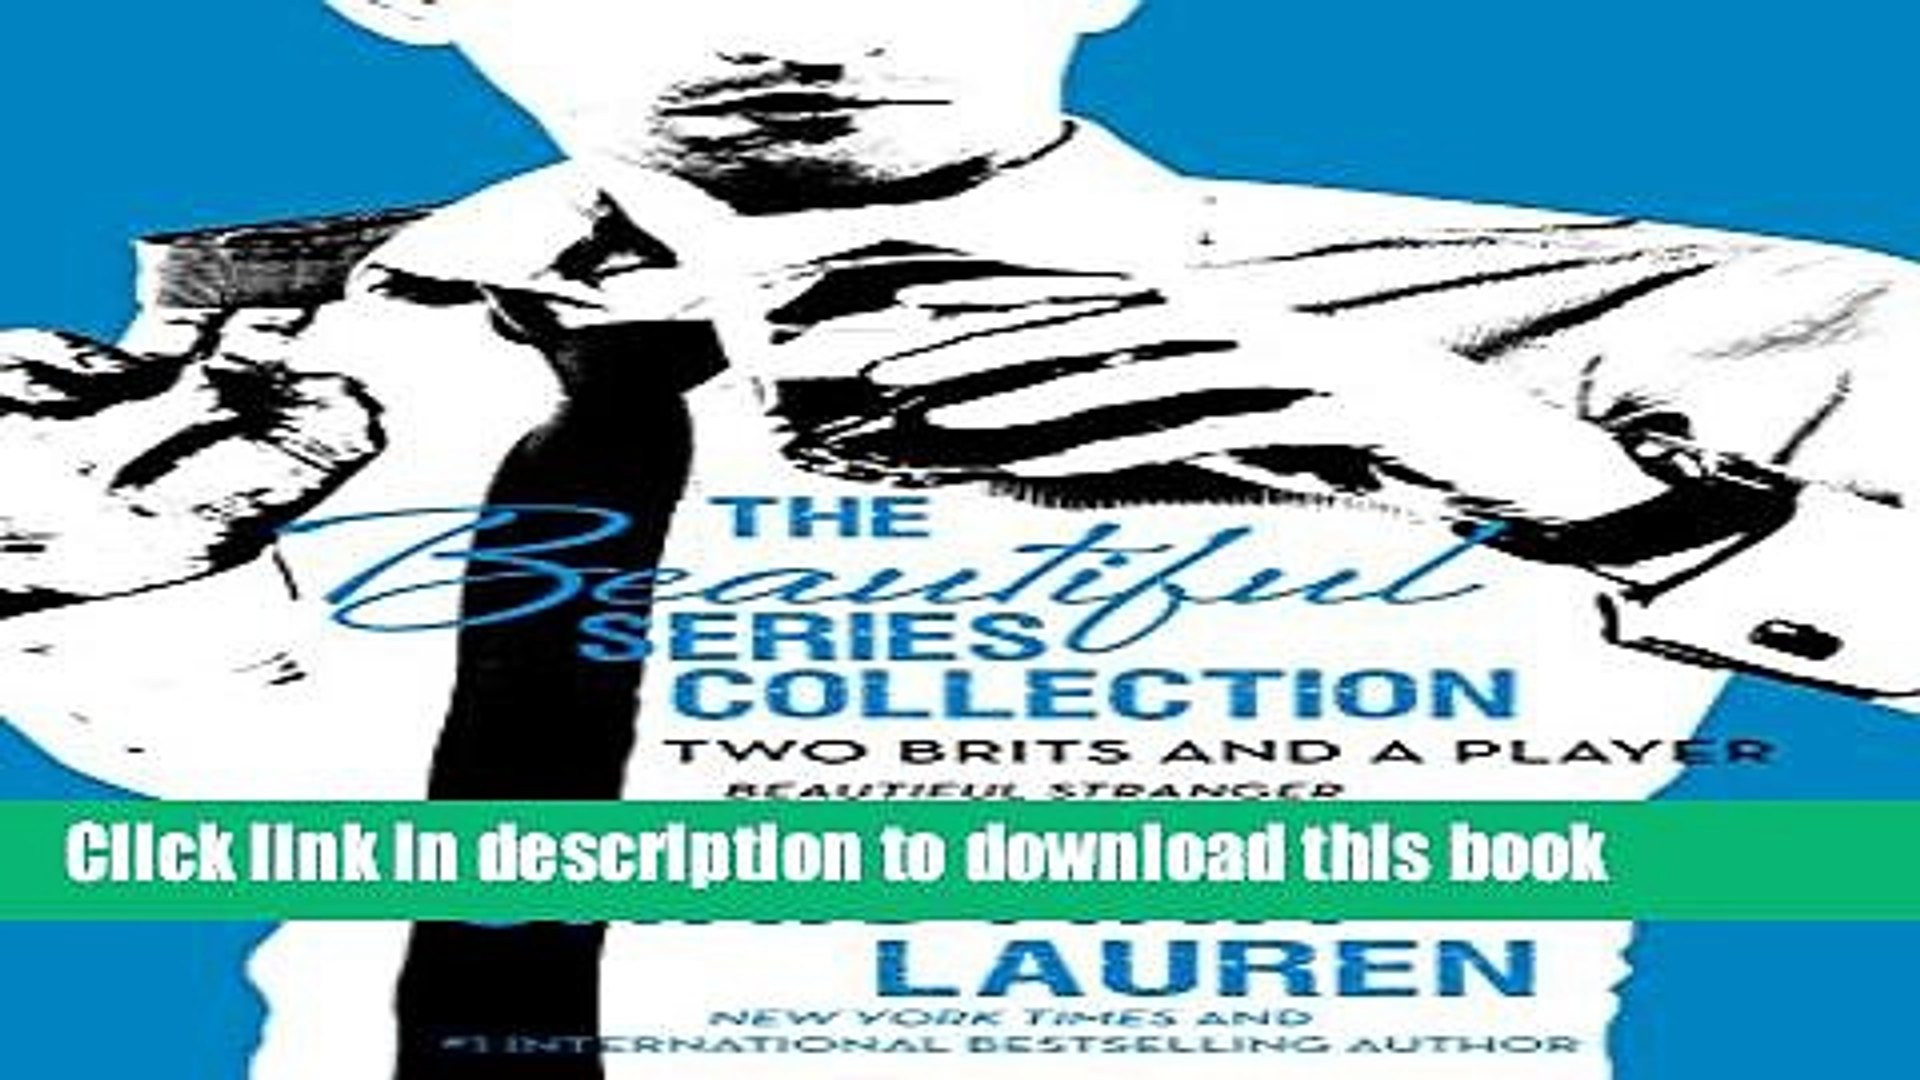 [PDF] The Beautiful Series Collection: Two Brits and a Player: BEAUTIFUL STRANGER, BEAUTIFUL